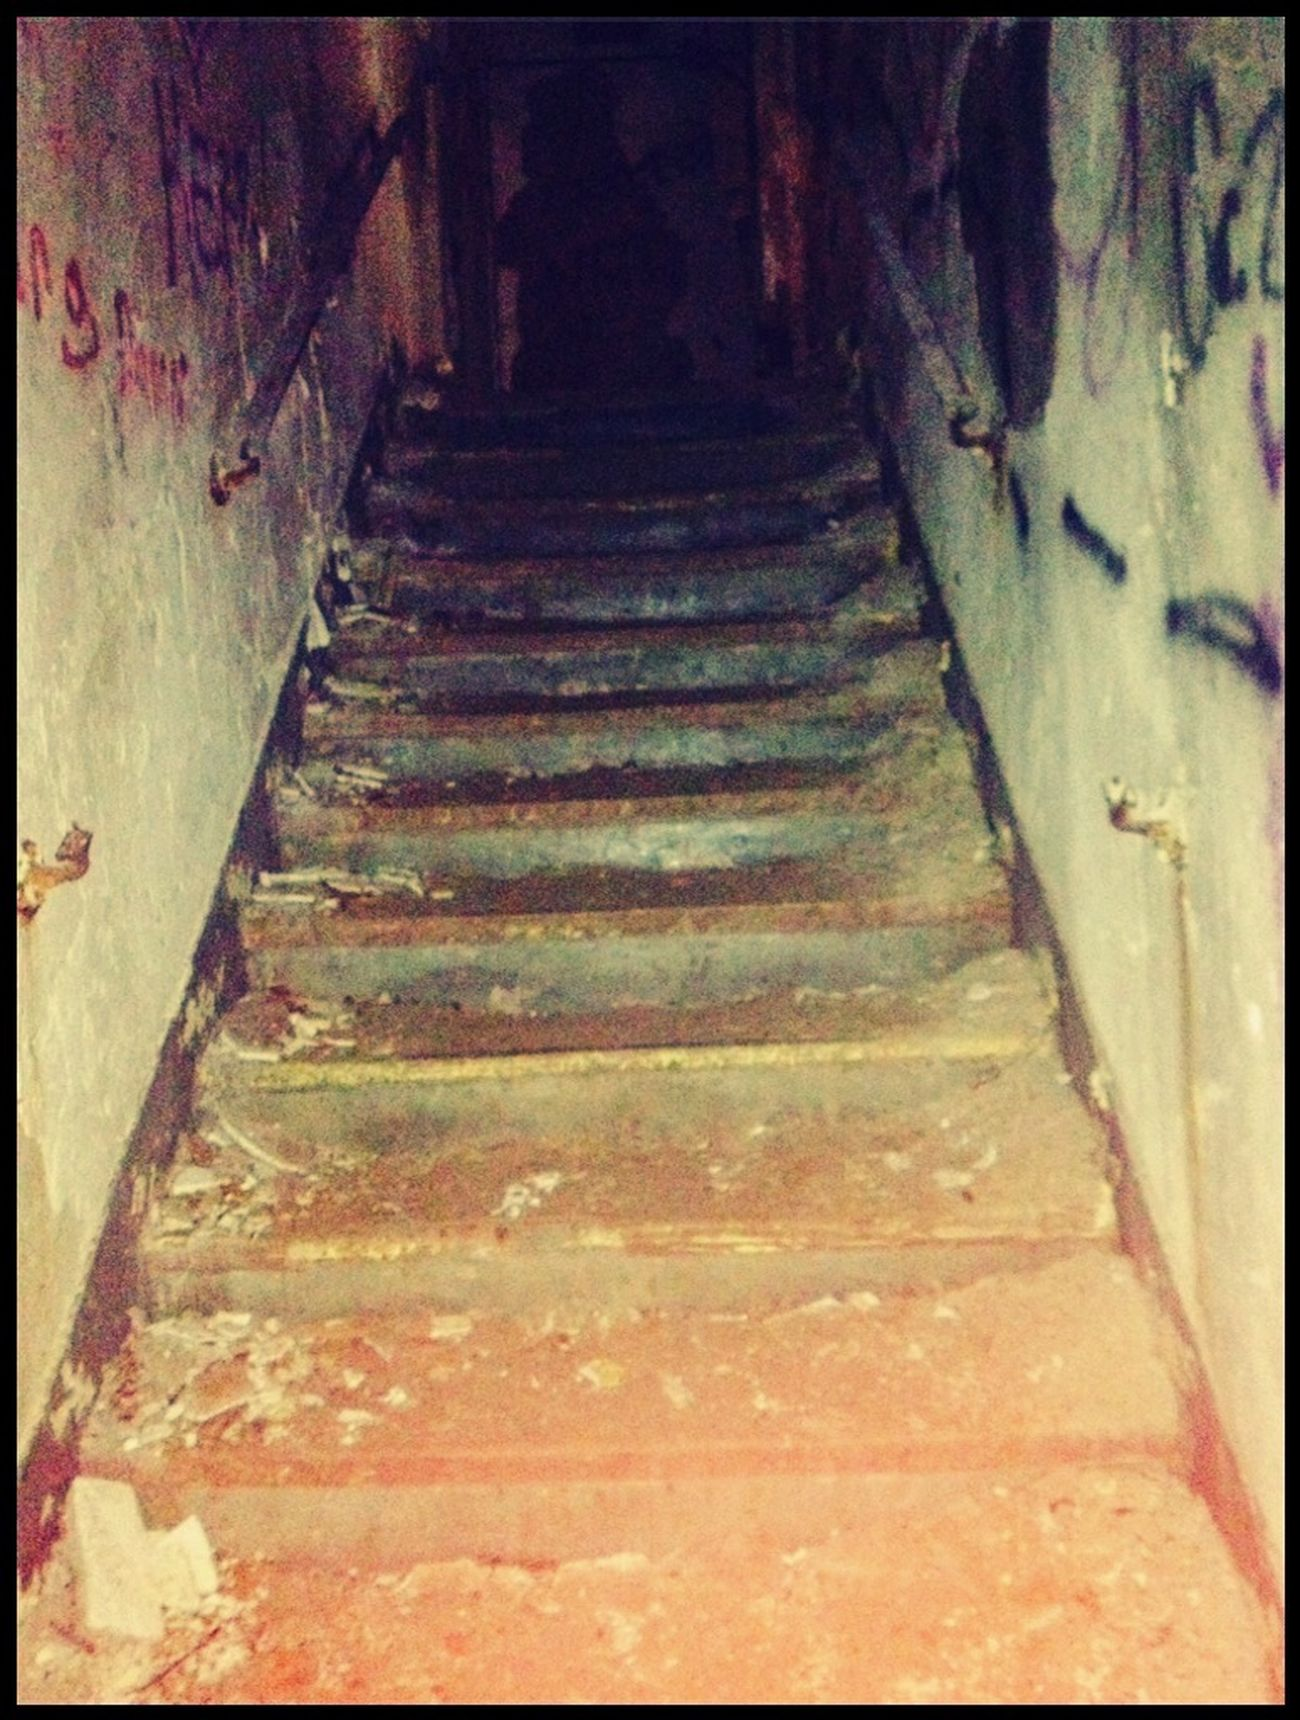 Bryce Hospital Insane Asylum Scary Abandoned